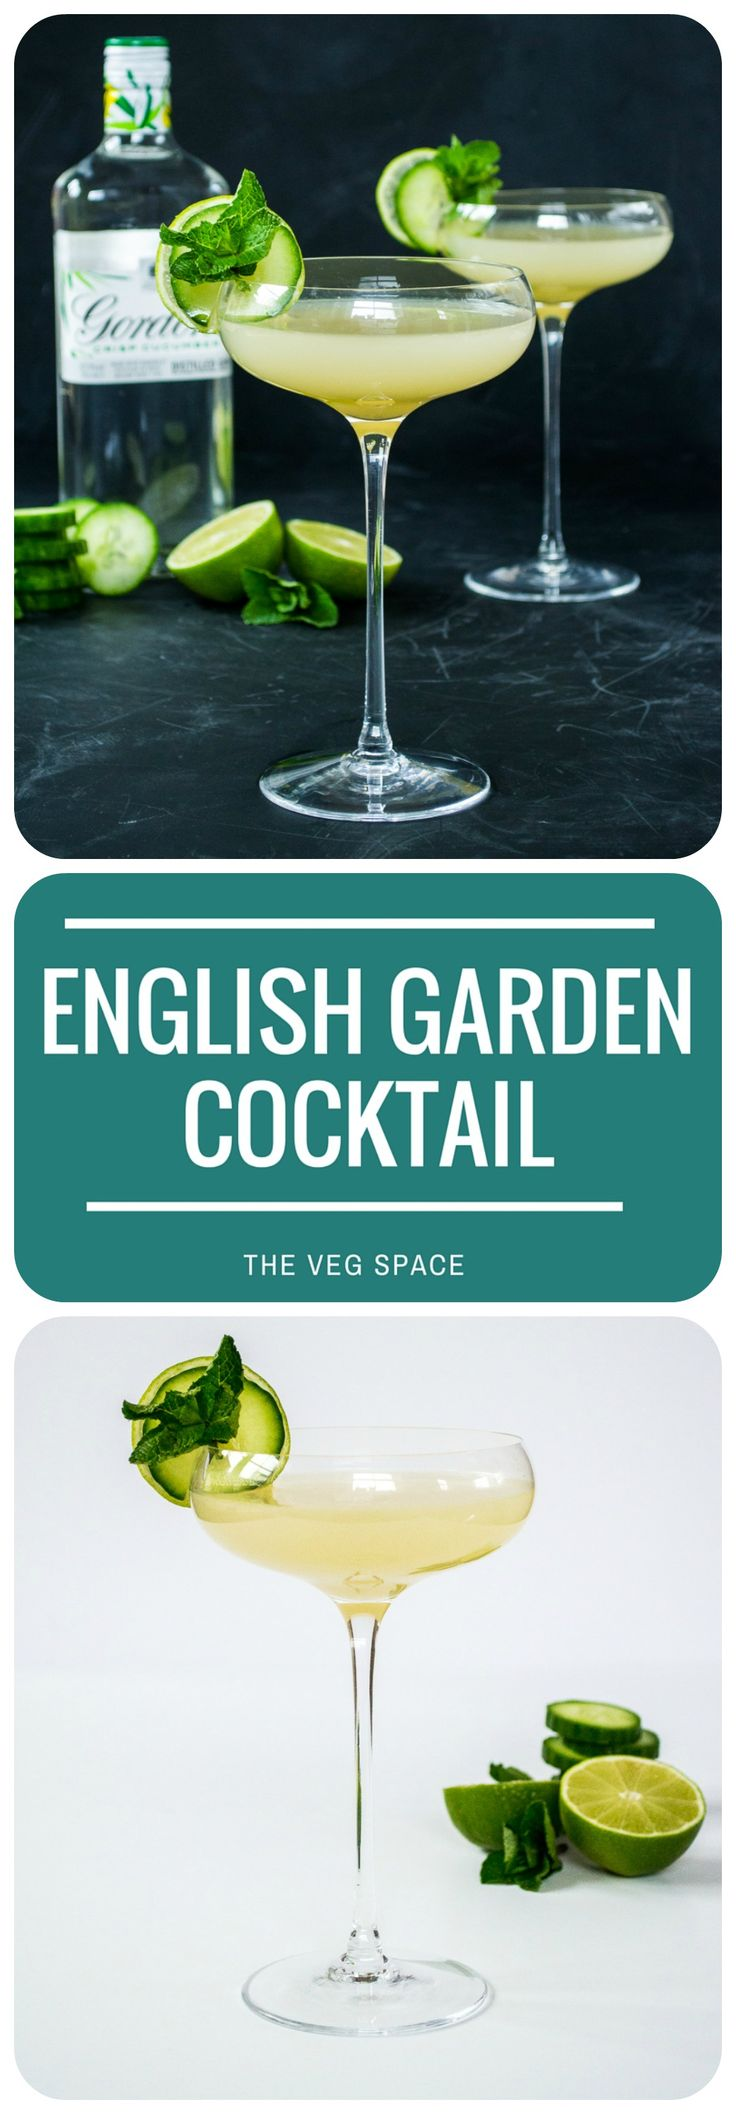 This pretty English Garden Cocktail of cucumber gin, apple juice and mint is a one-unit cocktail, a perfect light tipple for pre-dinner drinks. Vegetarian and Vegan Cocktail Recipe.